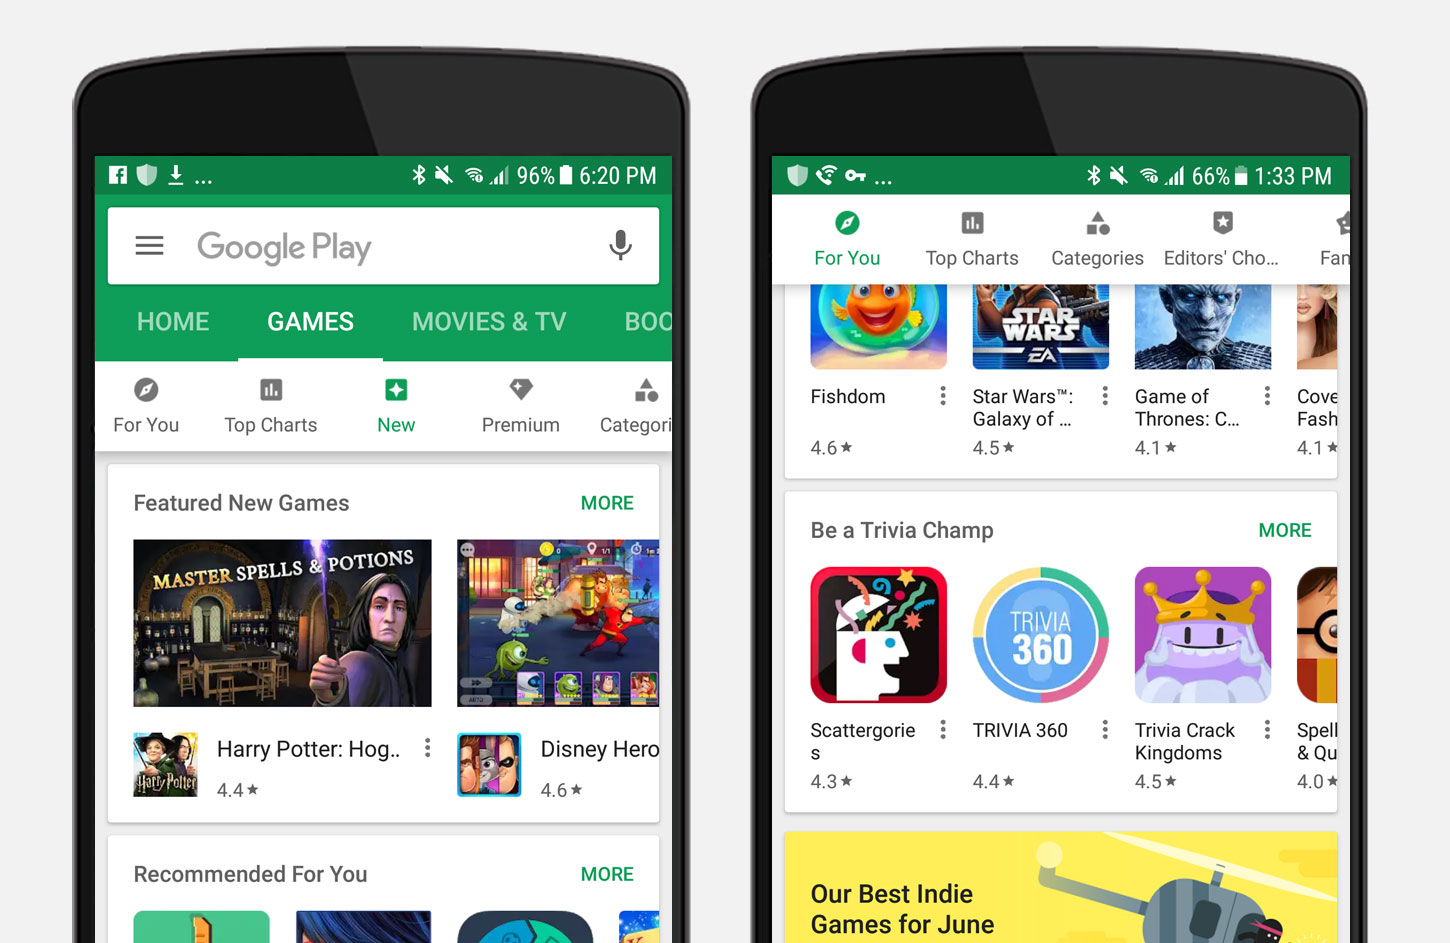 88% of Google Play Game Downloads Come From Search and Browse, 8